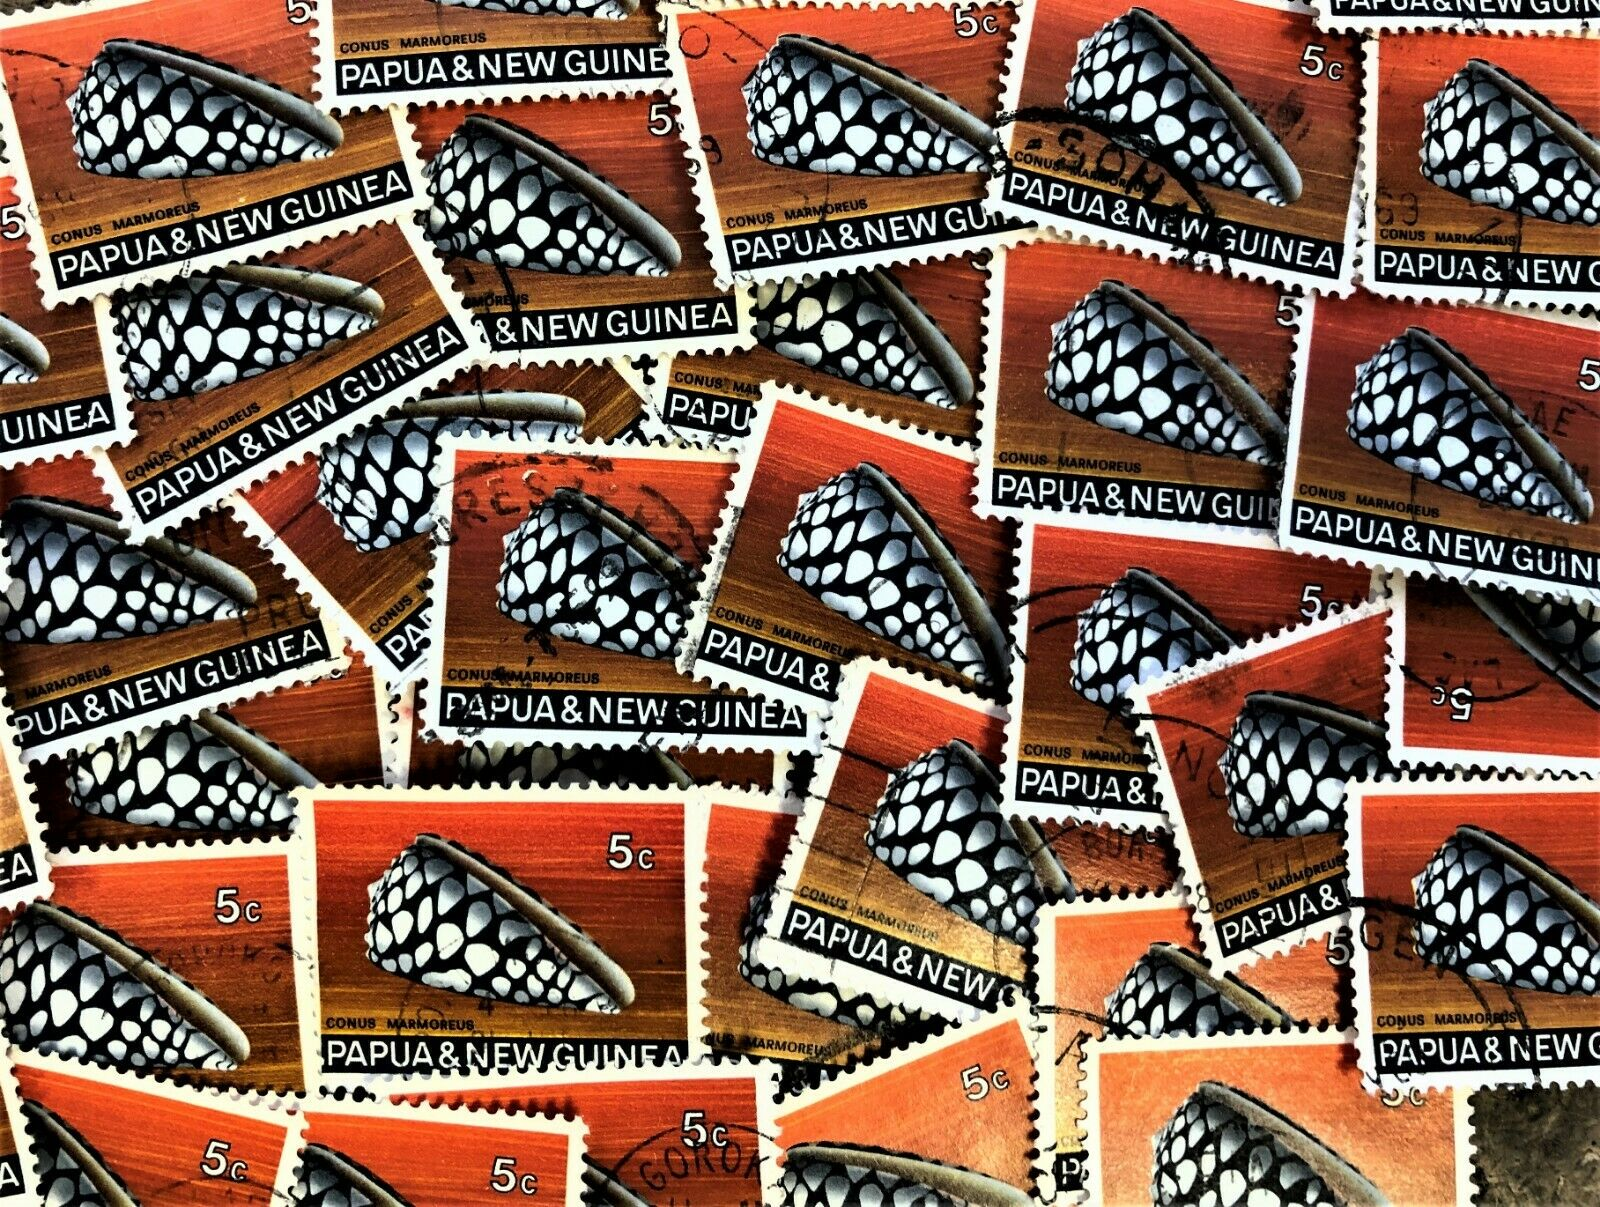 APPROX THIRTY THOUSAND PAPUA 5C PREDATORY CONUS SHELL STAMPS USED 1968 SG140